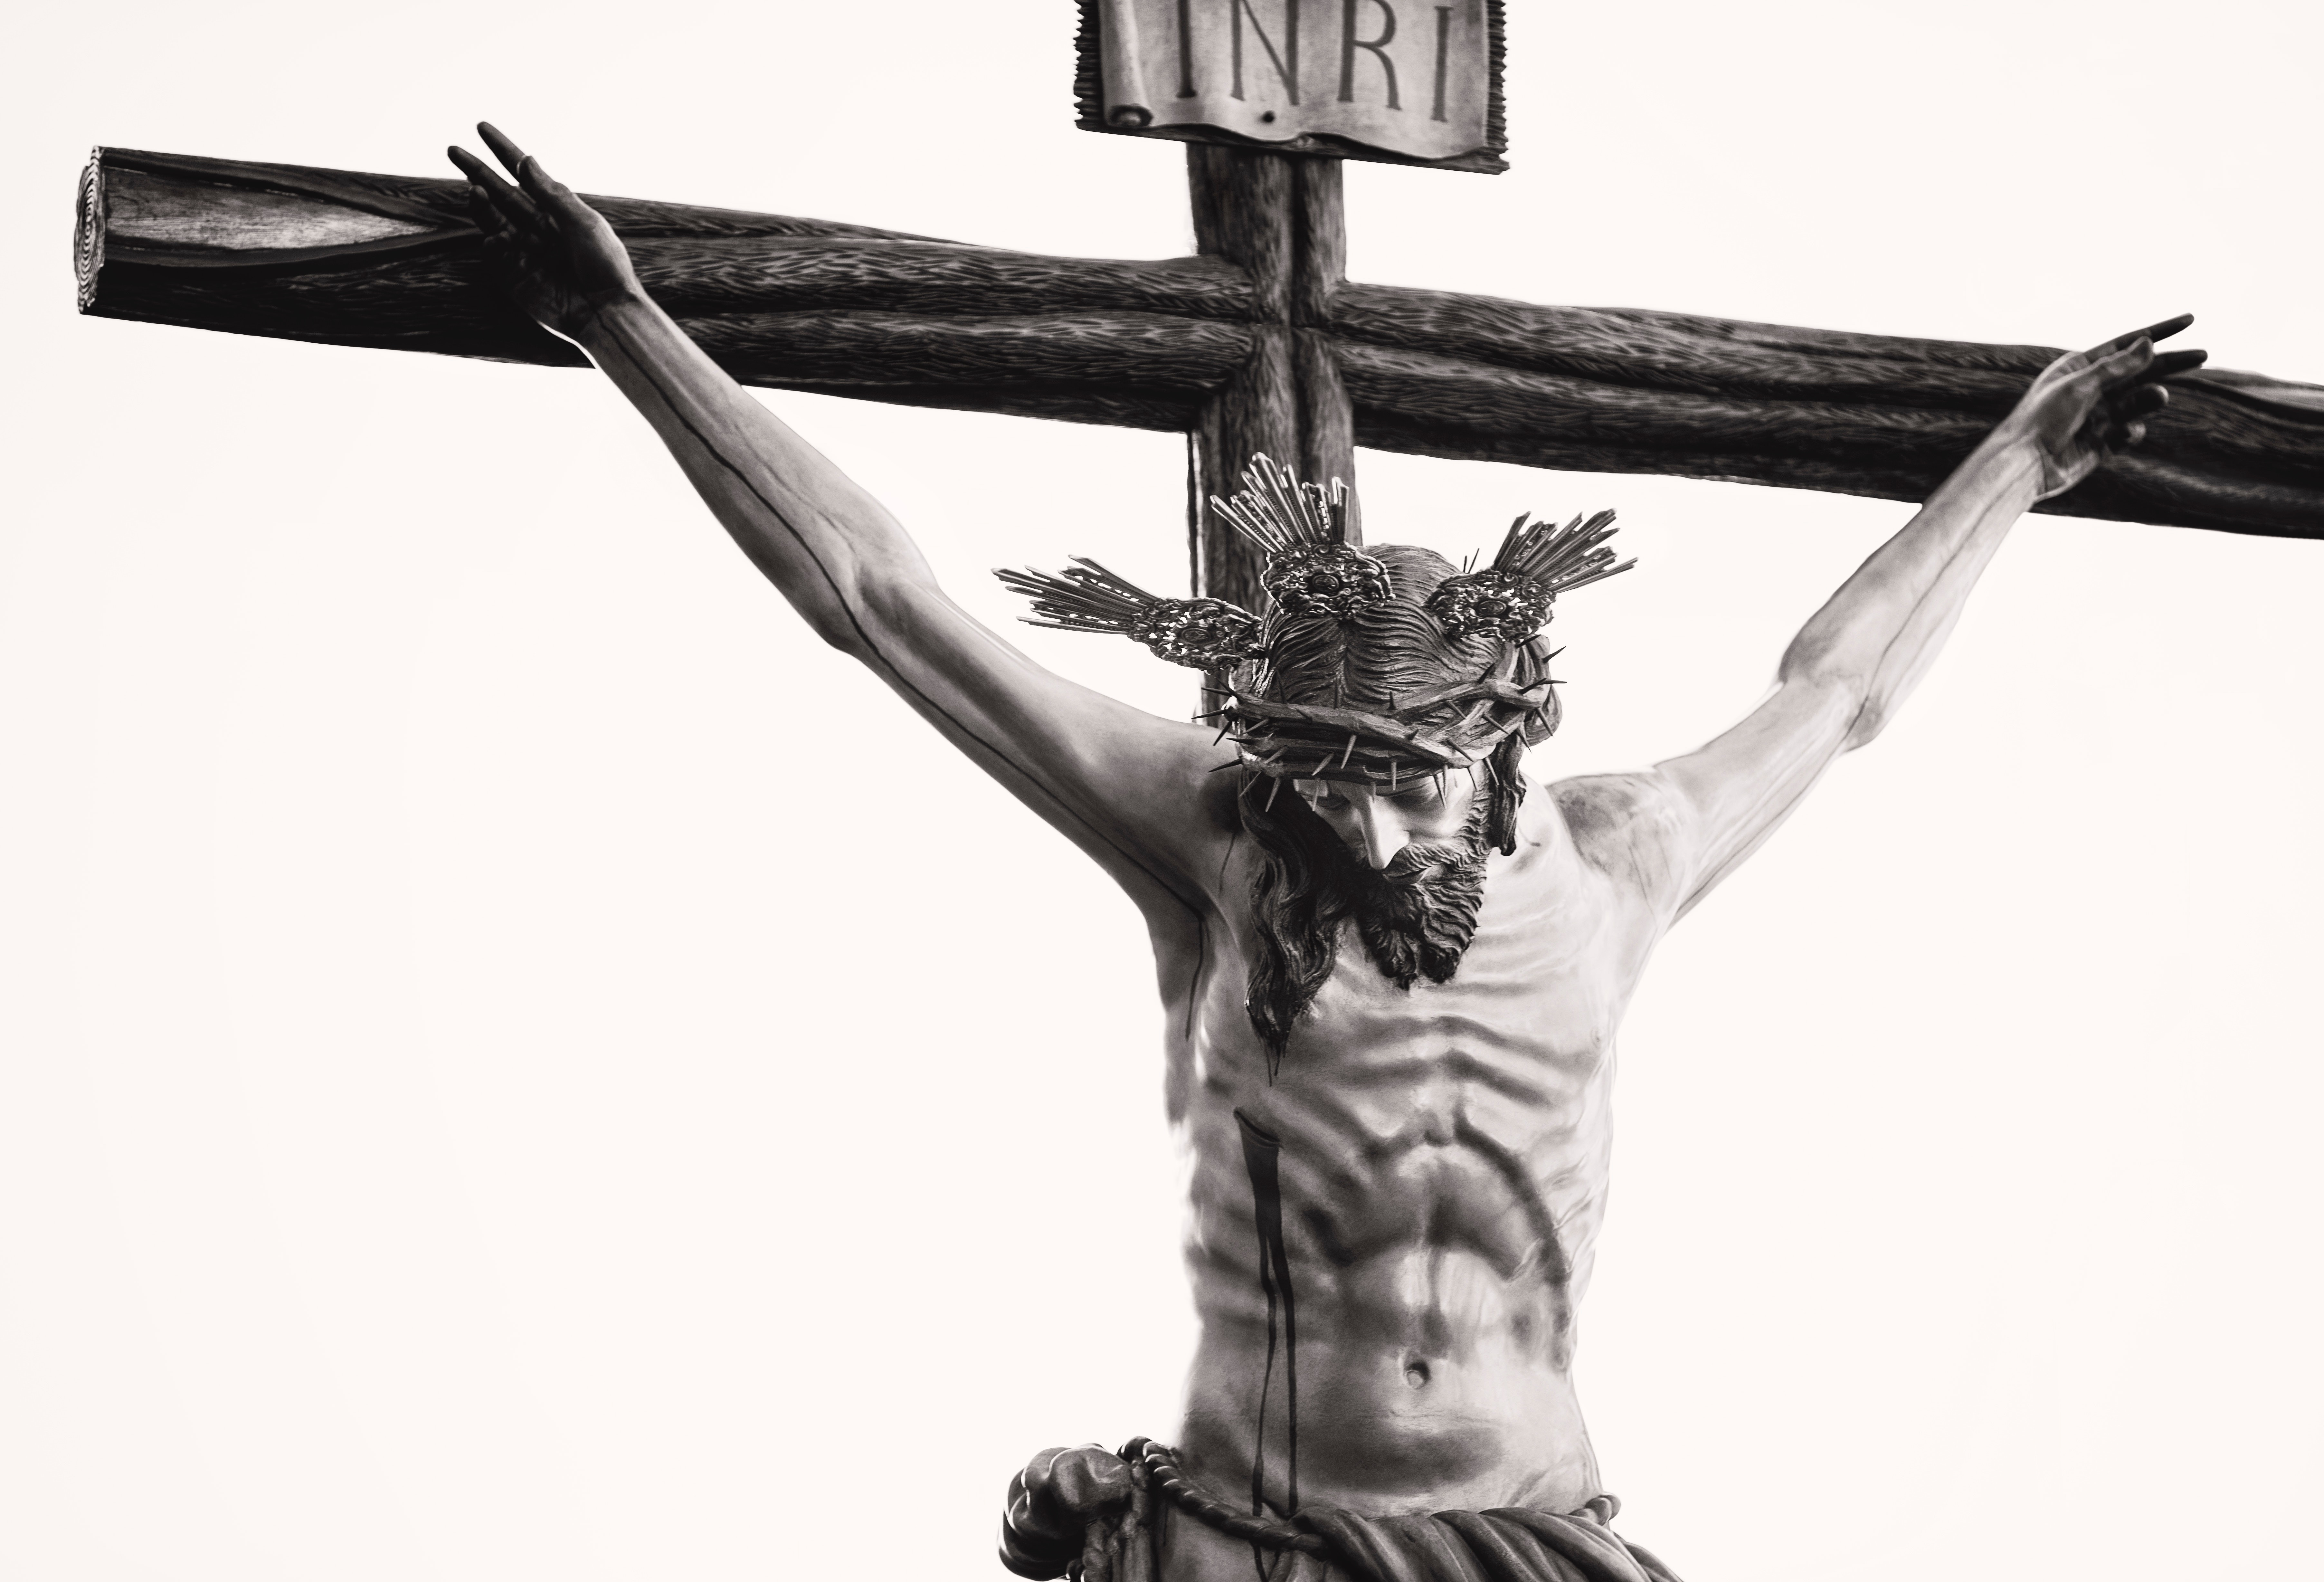 grayscale-photo-of-the-crucifix-977659